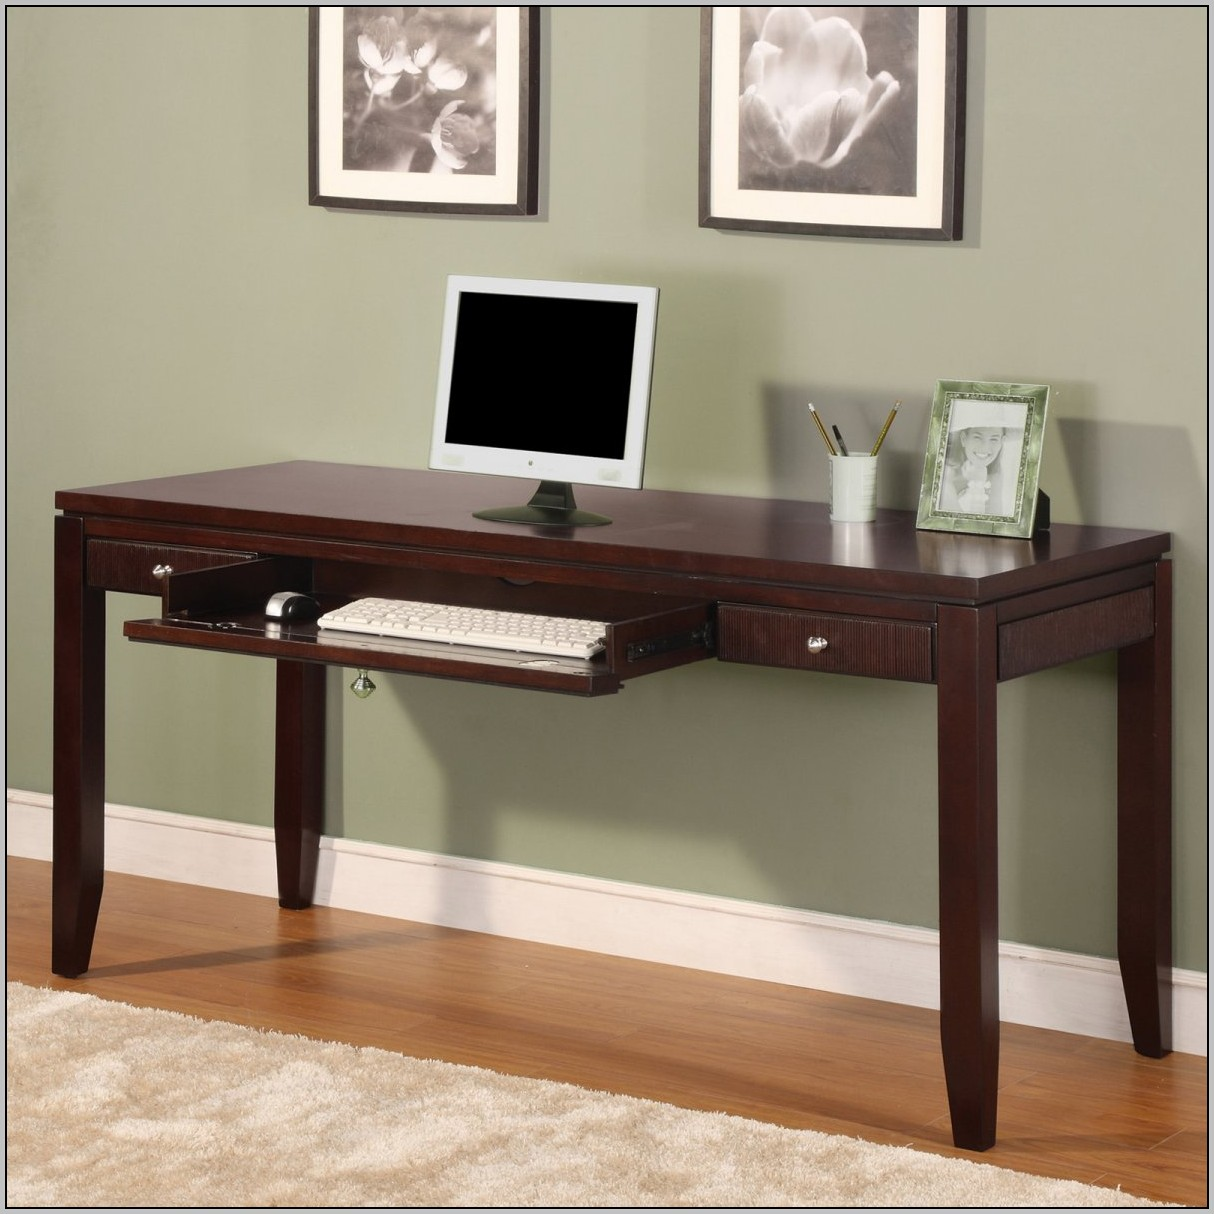 Writing Desk With Drawers Name